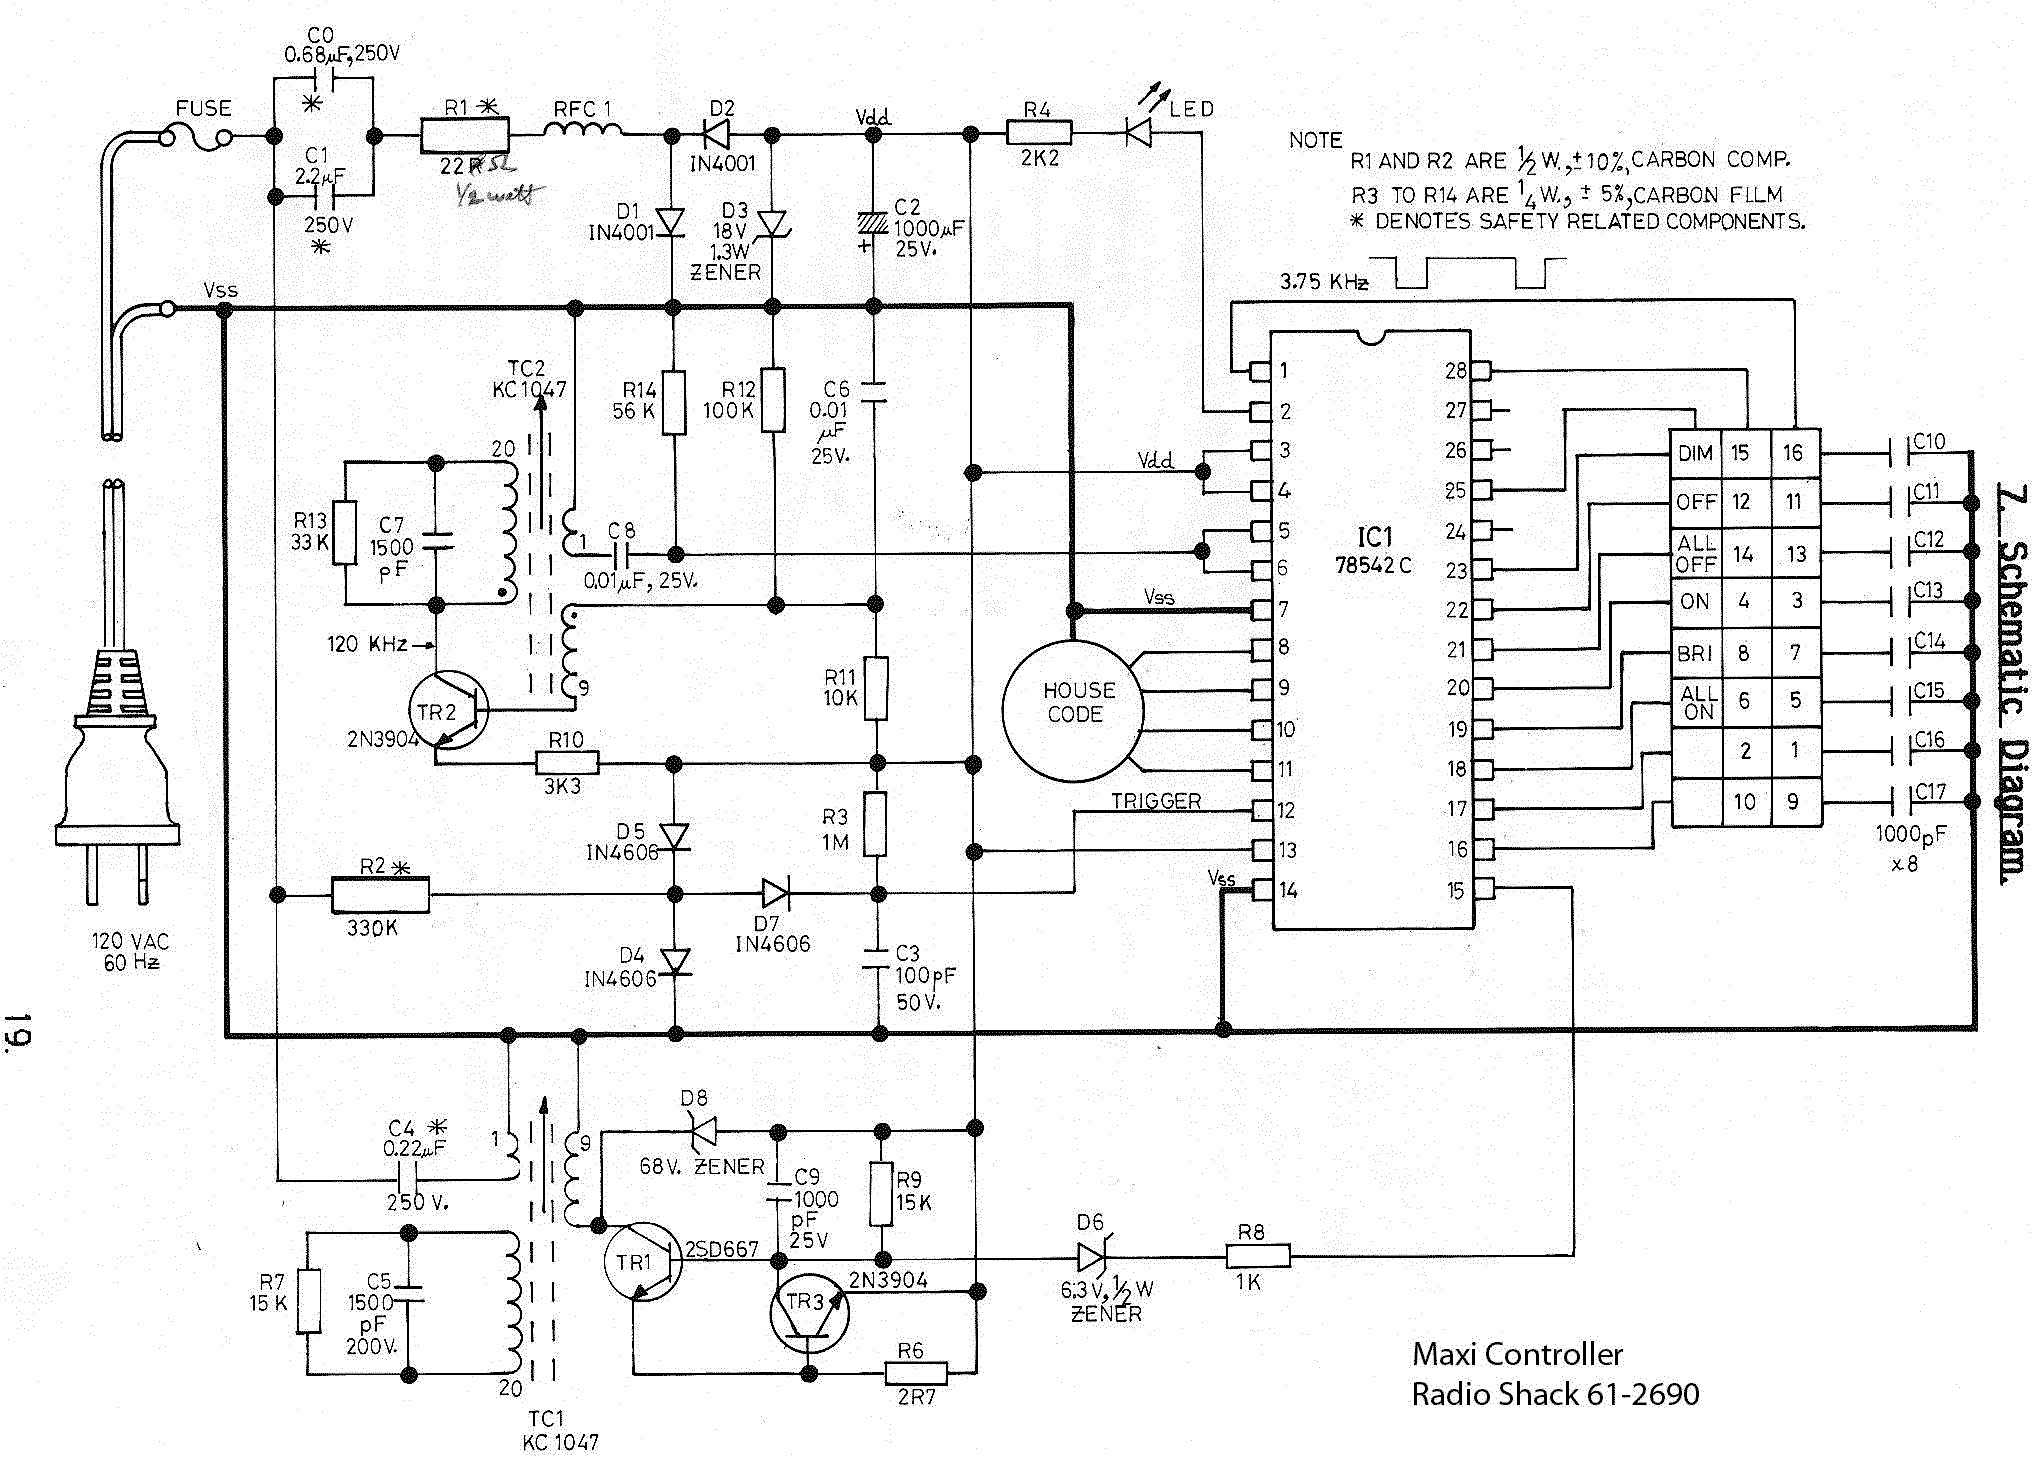 eaton 9130 wiring diagram electrical schematic wiring diagram